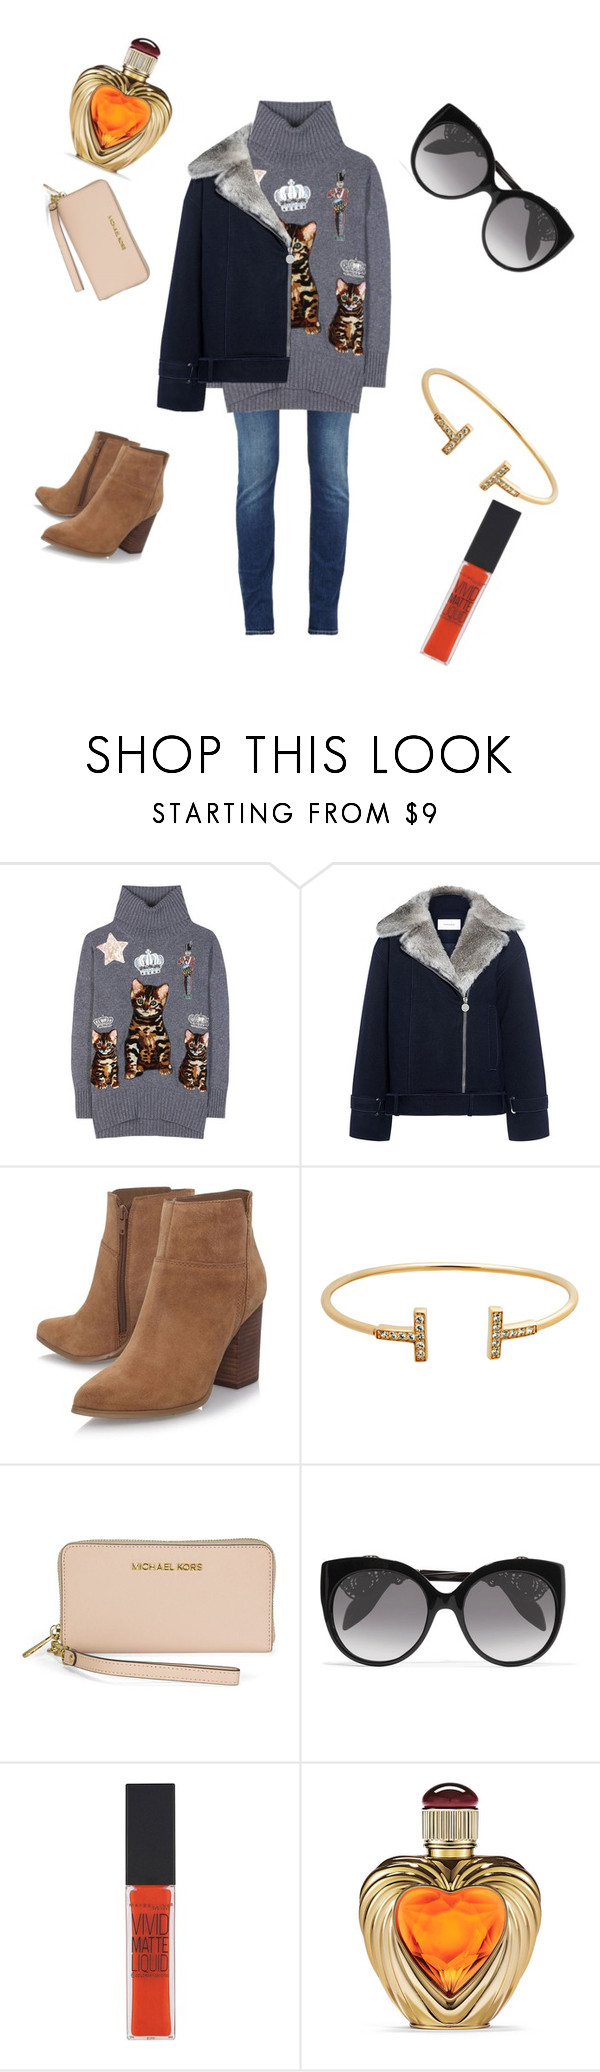 """For My 🐌"" by jzn0320 ❤ liked on Polyvore featuring Dolce&Gabbana, Carven, Nine West, Michael Kors, Alexander McQueen, Maybelline and Victoria's Secret"